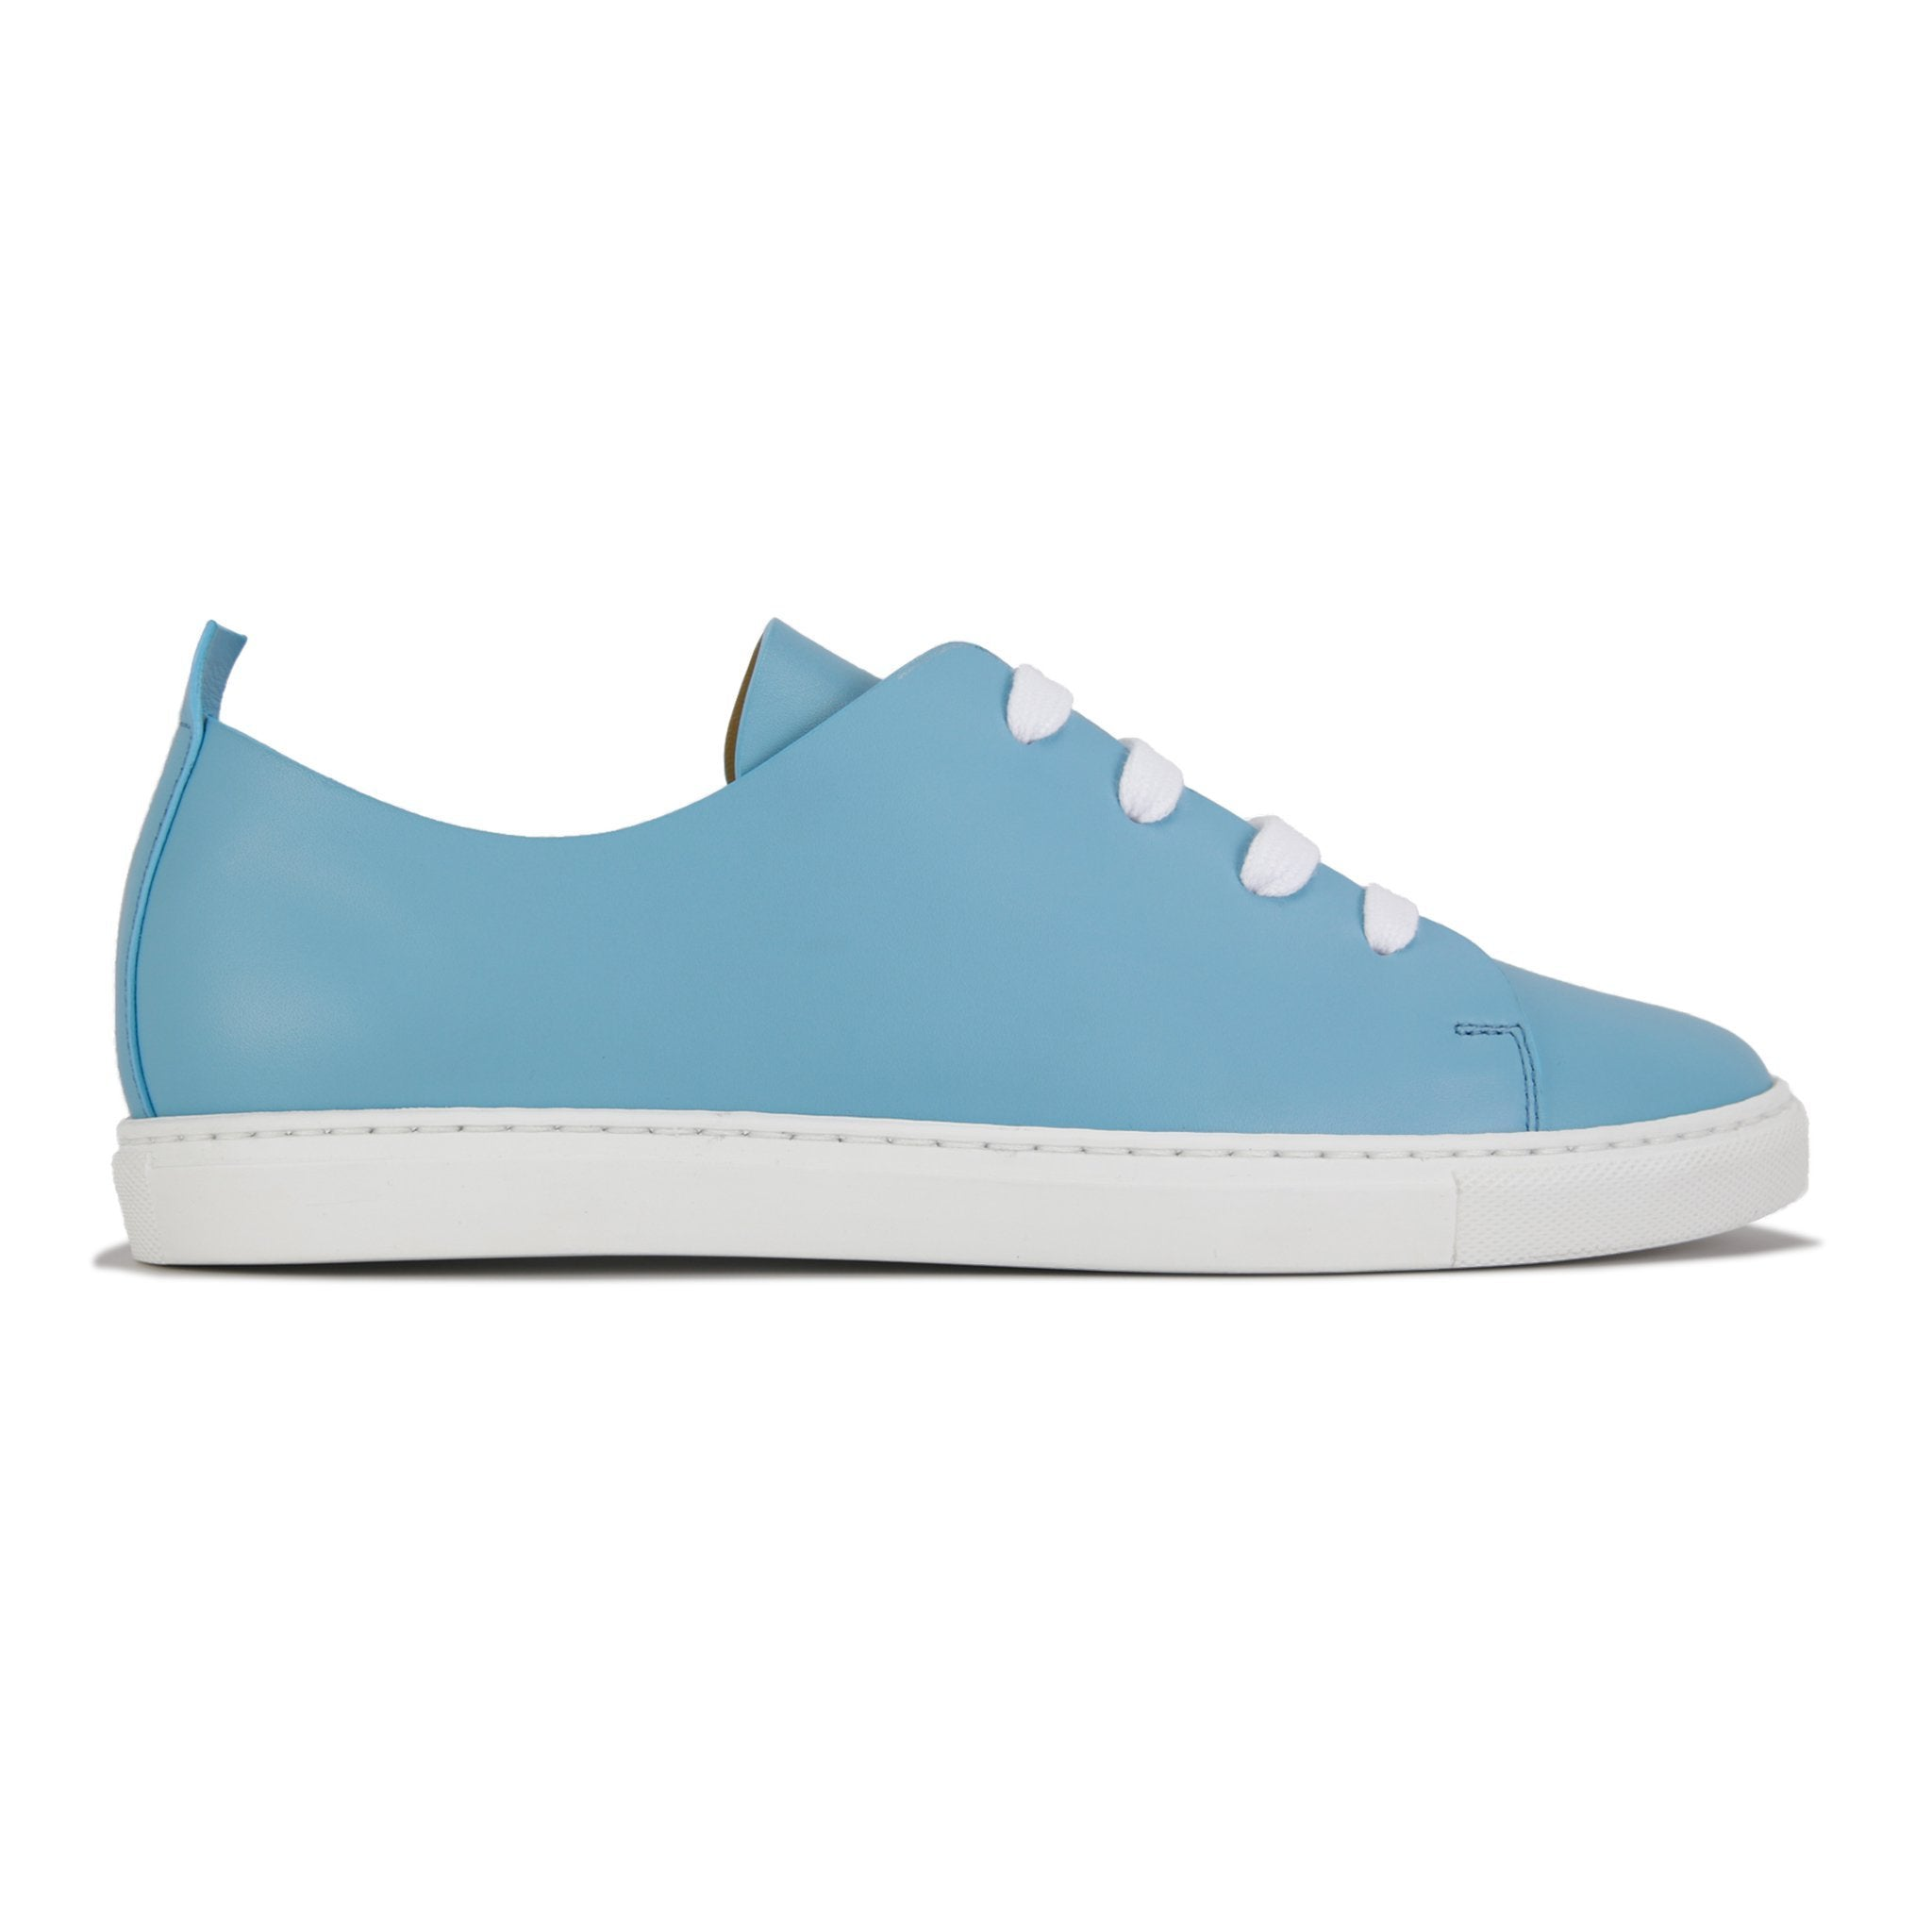 CAPALBIO - Pompeii Baby Blue, VIAJIYU - Women's Hand Made Sustainable Luxury Shoes. Made in Italy. Made to Order.